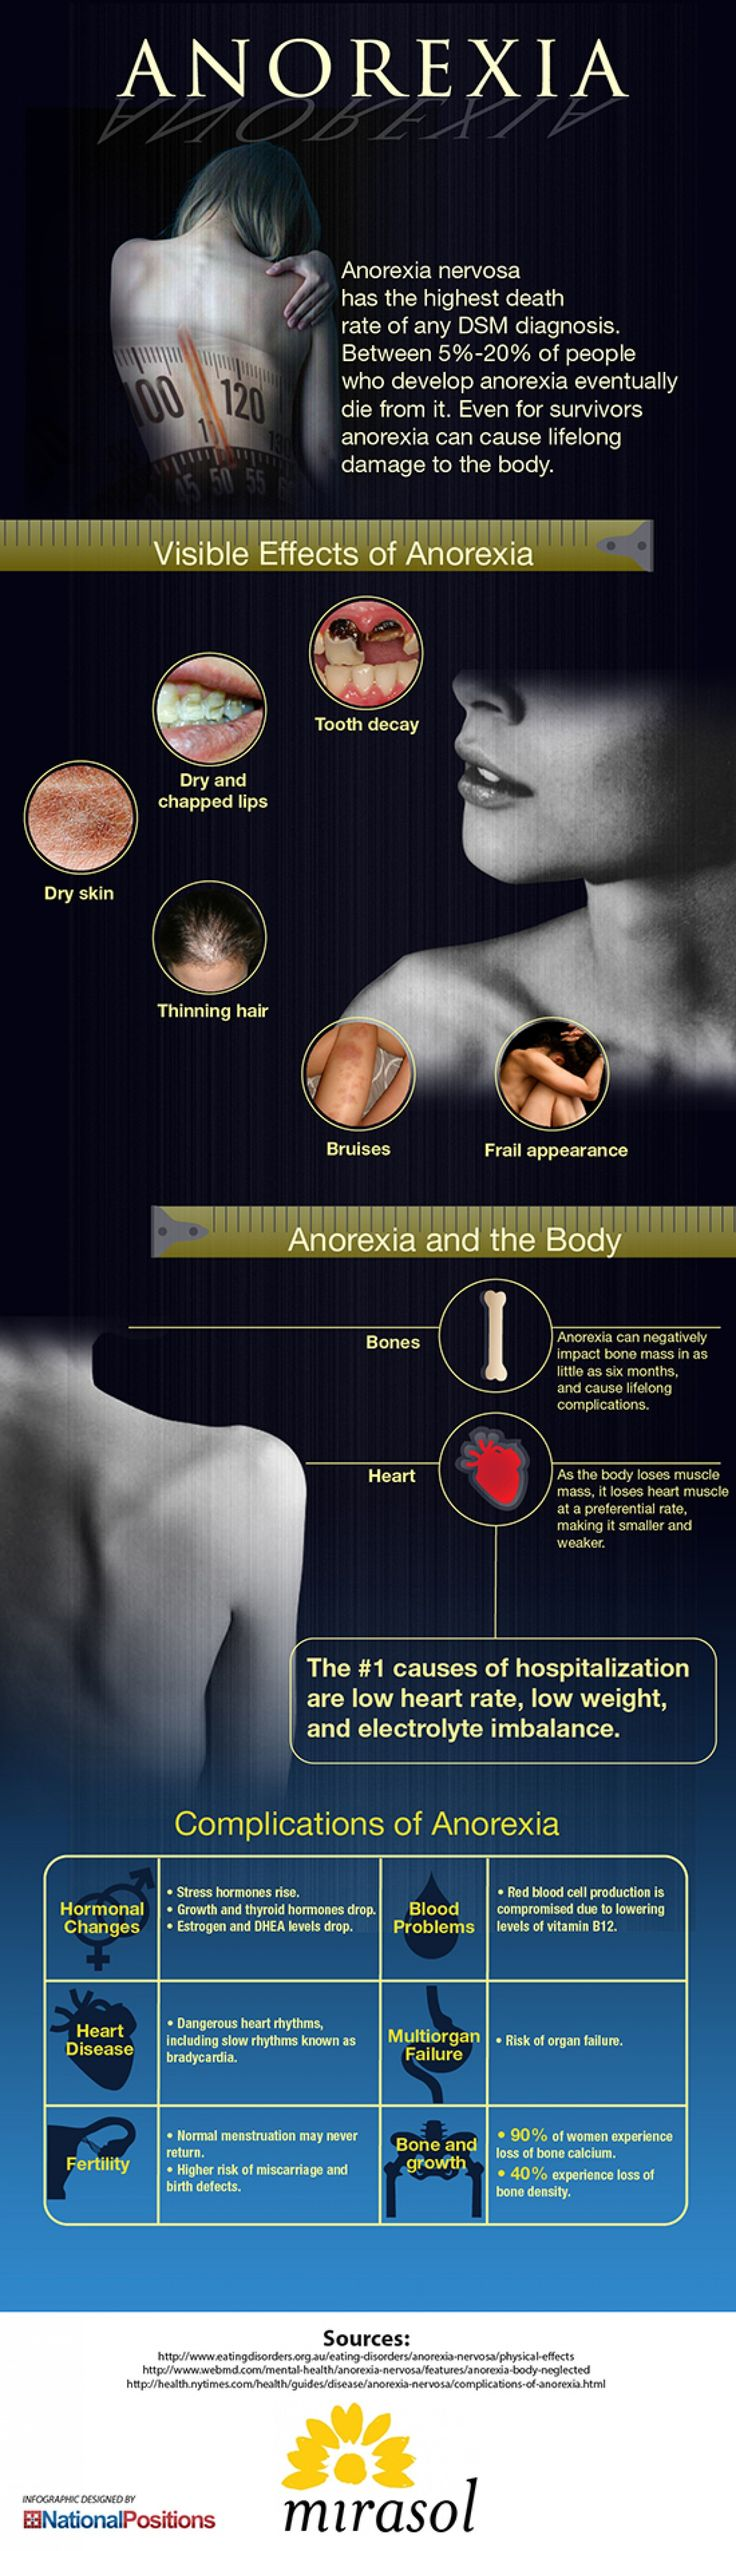 The reality of anorexia is something that you can't avoid unless you make the effort to recover NOW.